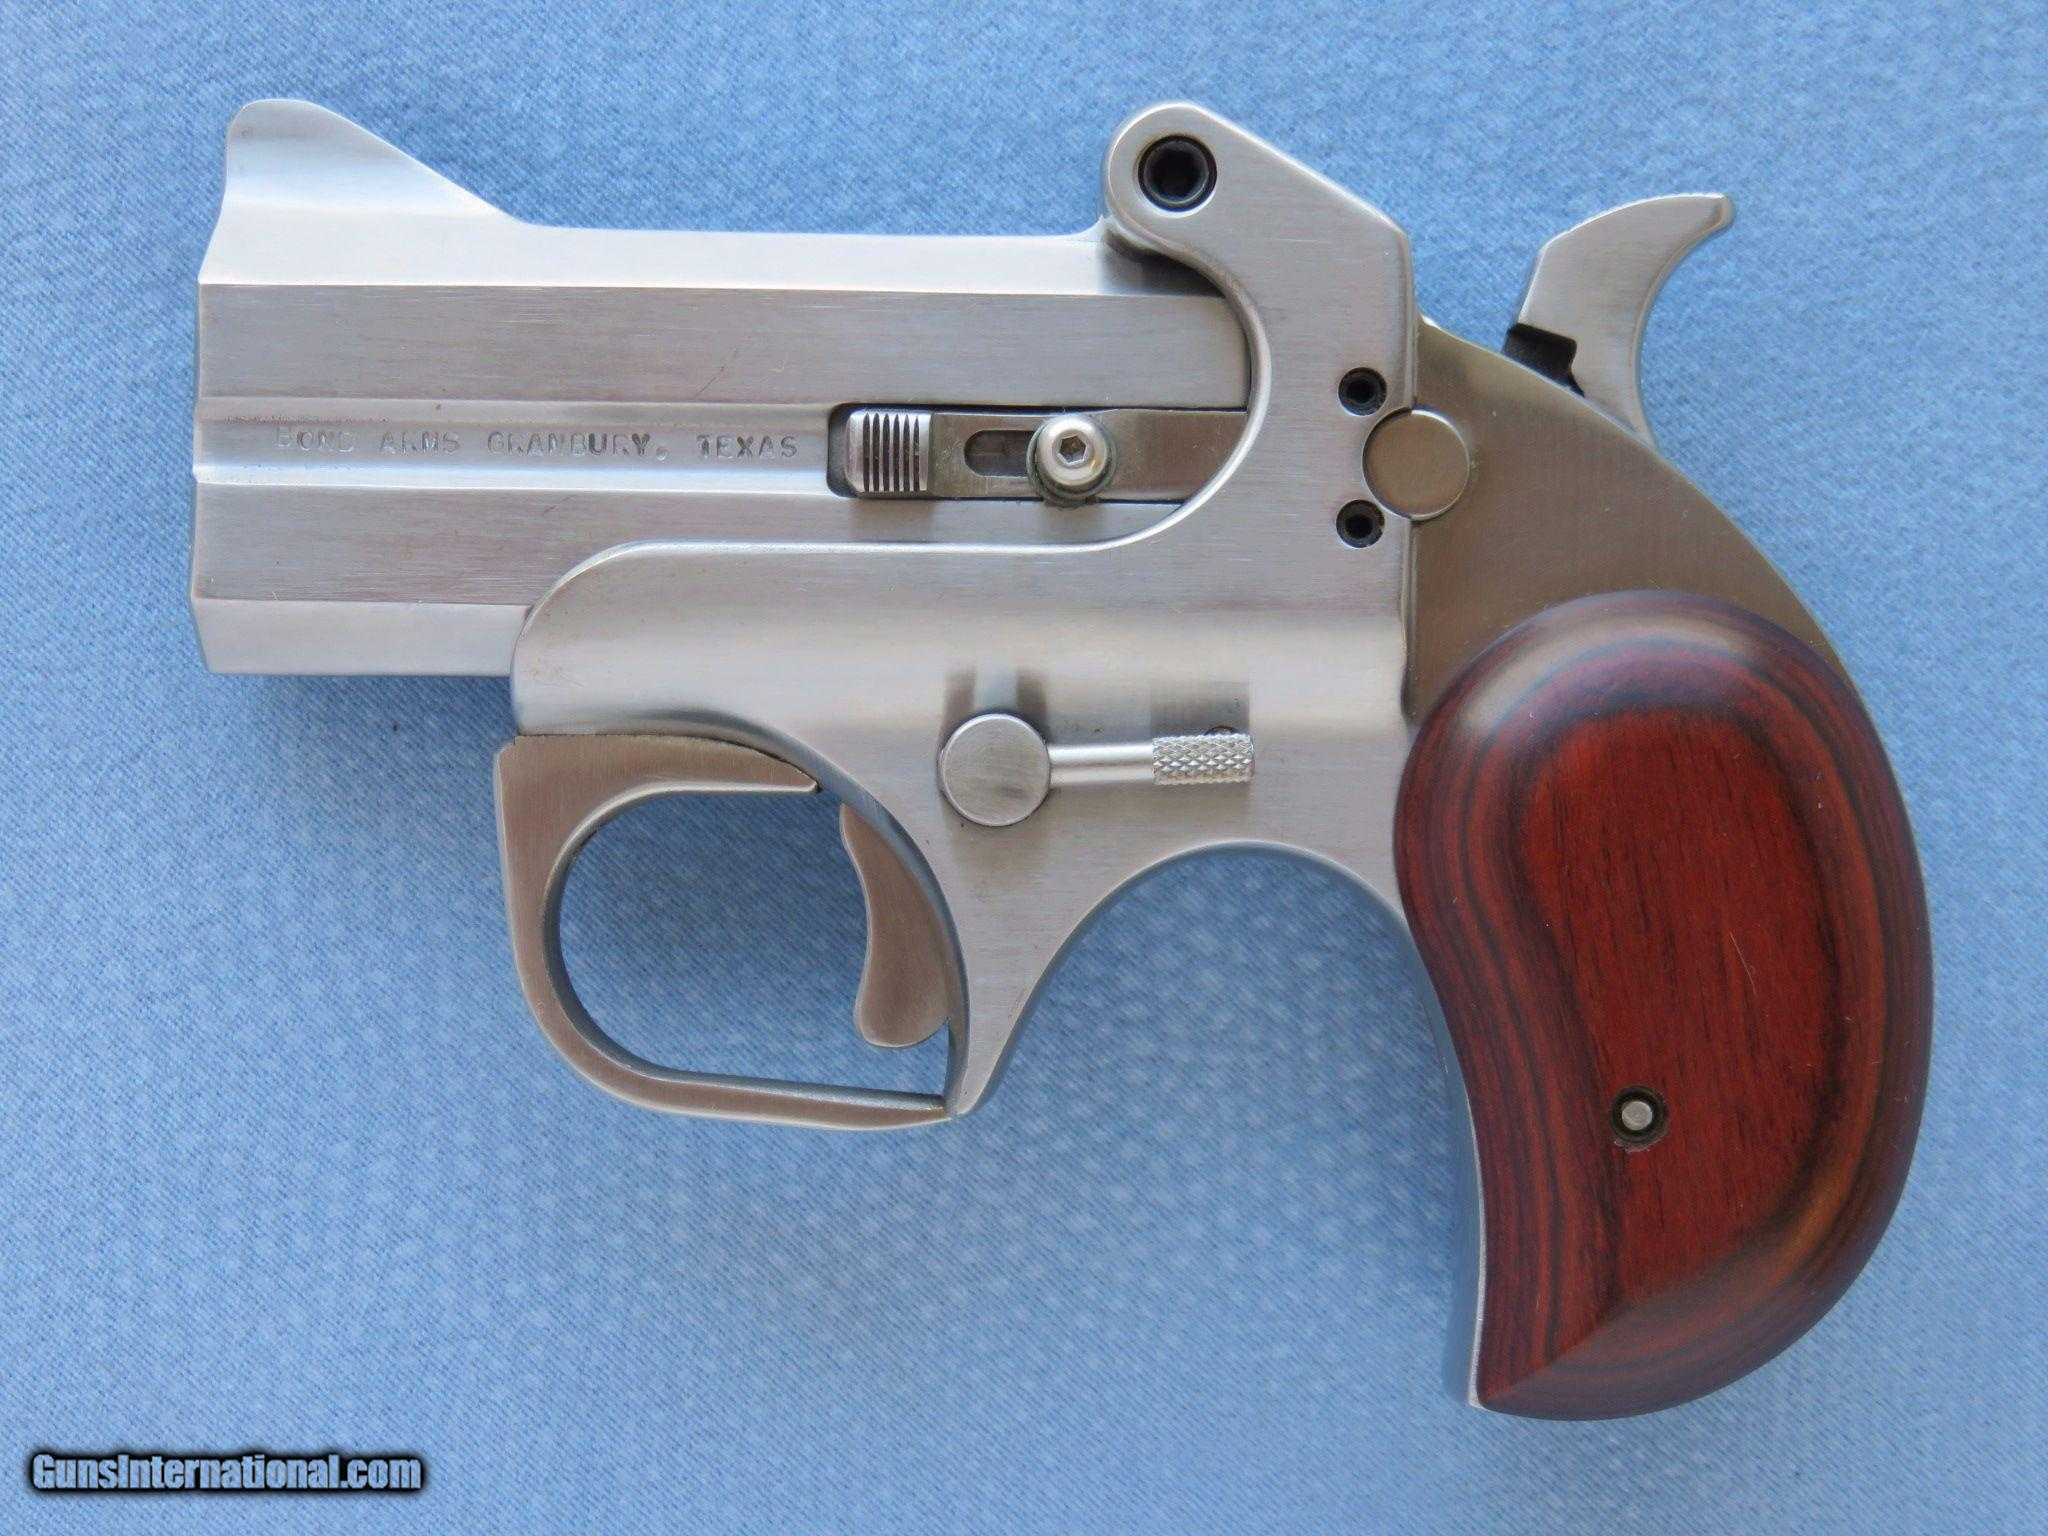 Bond Arms Texas Defender, 2-Barrel Derringer, Cal   44 Magnum